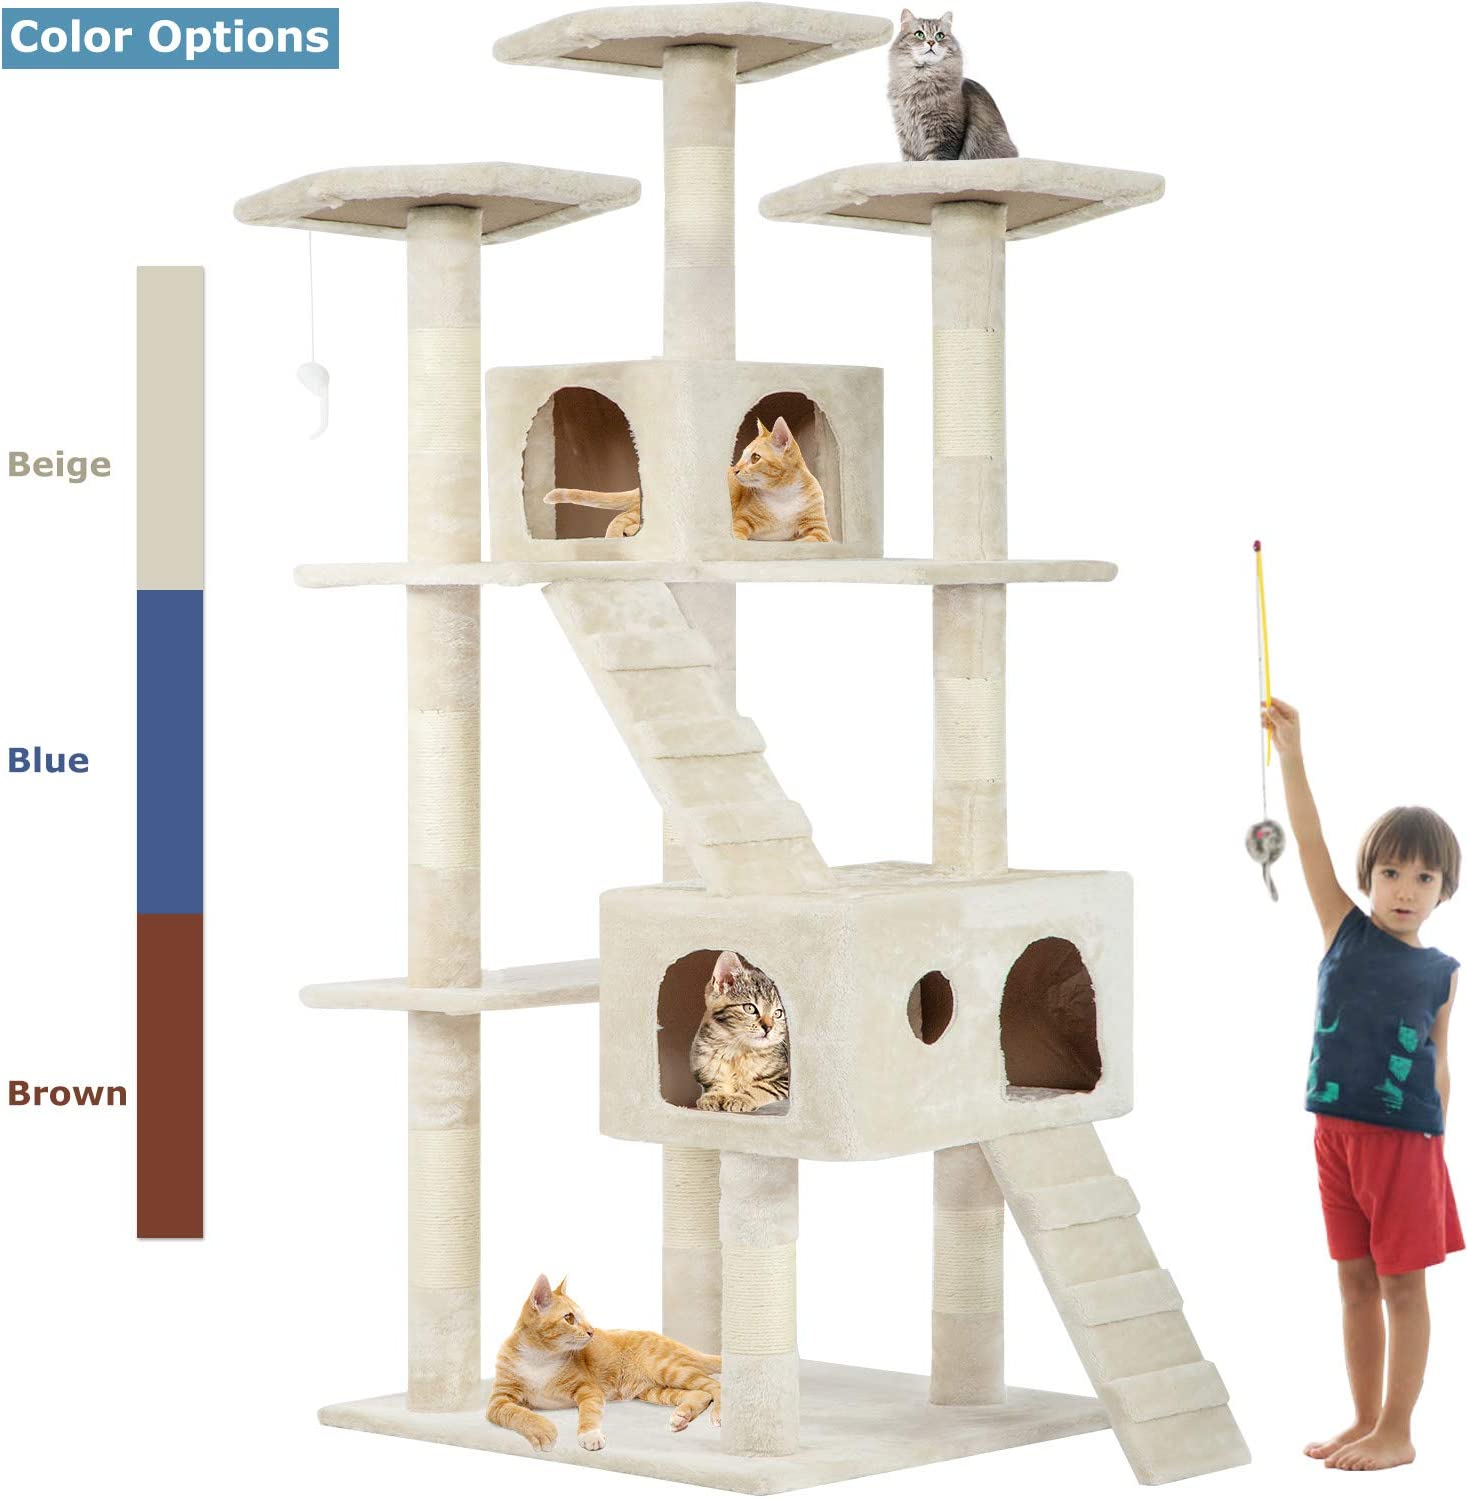 BestPet Cat Tree Cat Tower Cat Condo 72 inches Tall Multi-Level Playpen House Kitty Activity Tree Center with Funny Toys,Multiple Colors